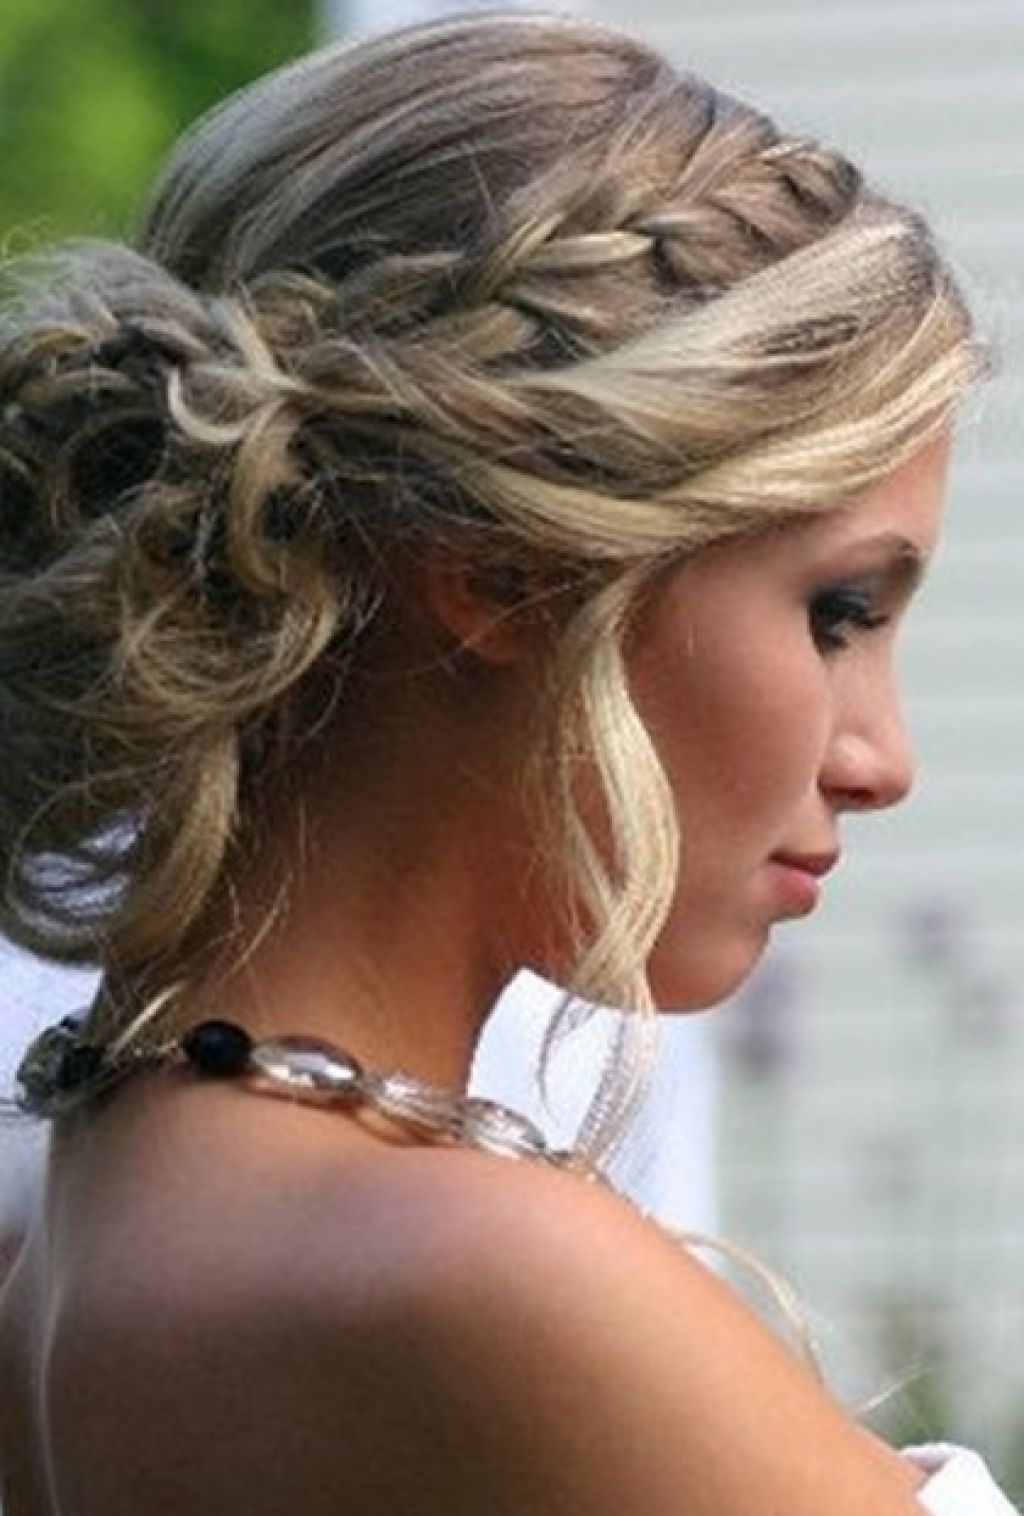 Updo Hair Styles For Wedding And Prom Throughout Homecoming Updos For Medium Length Hair (View 12 of 15)